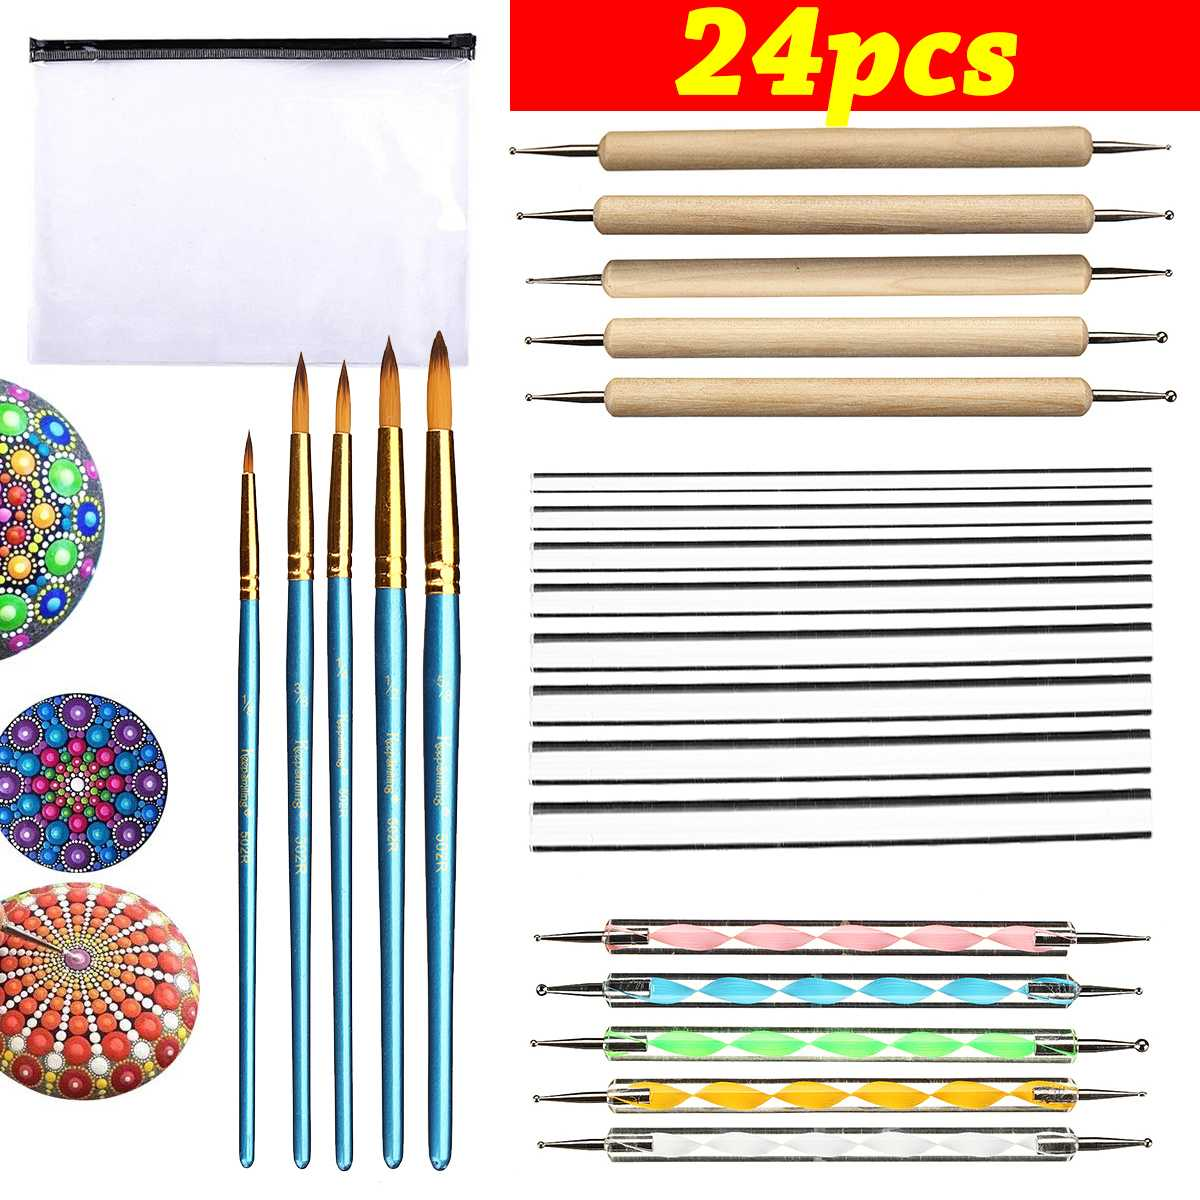 24PCS Mandala Painting Dotting Tools With Dotting Rods Ball Stylus Pen Stencil Paint Tray Brushes For Canva Rock Fabric Wall Ar